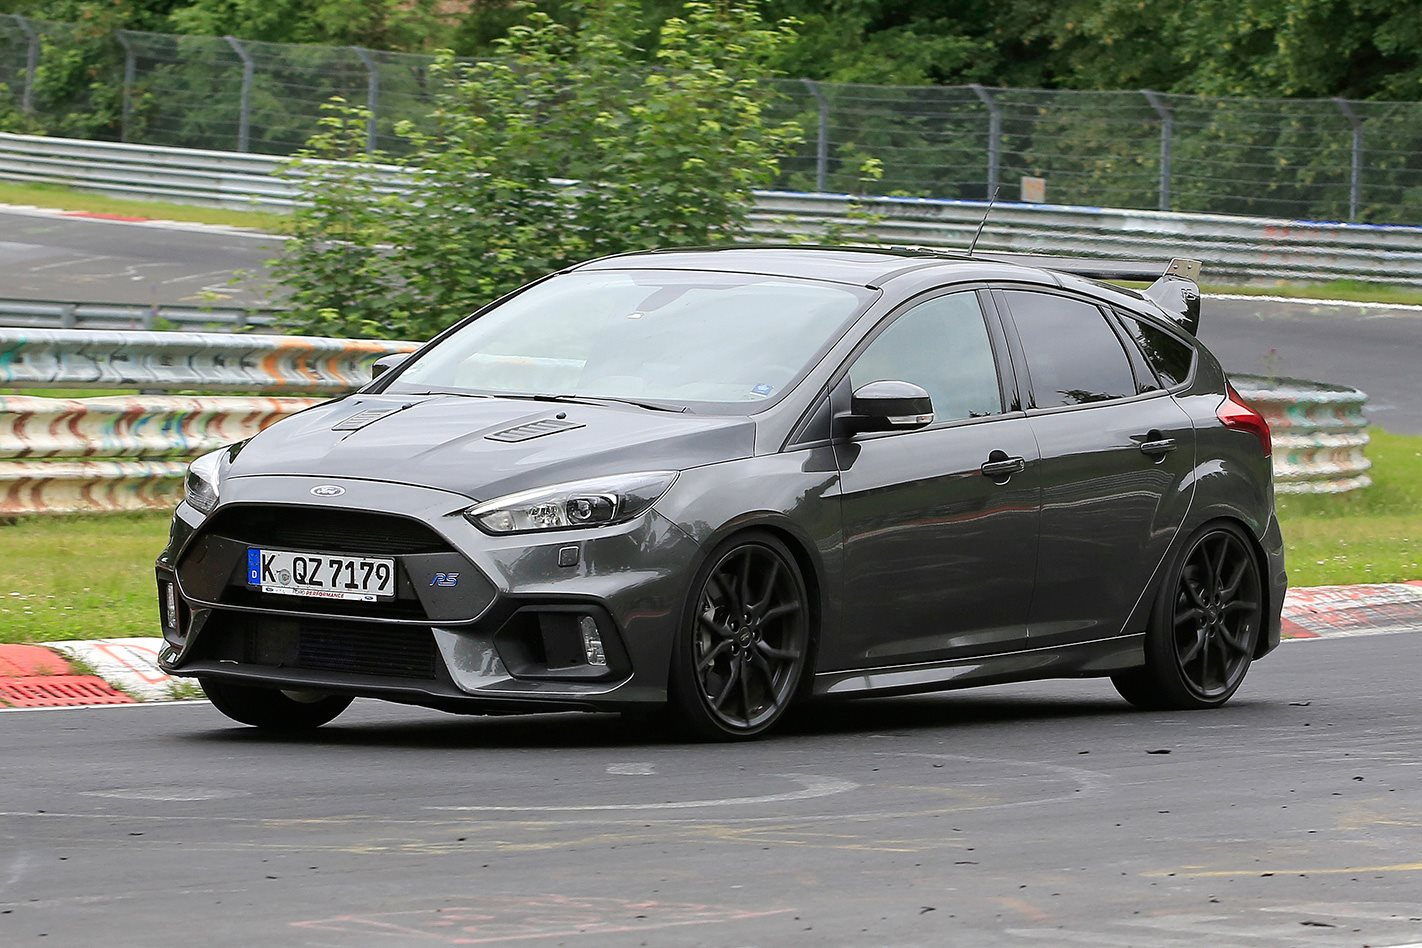 ford focus rs500 set for australia wheels. Black Bedroom Furniture Sets. Home Design Ideas